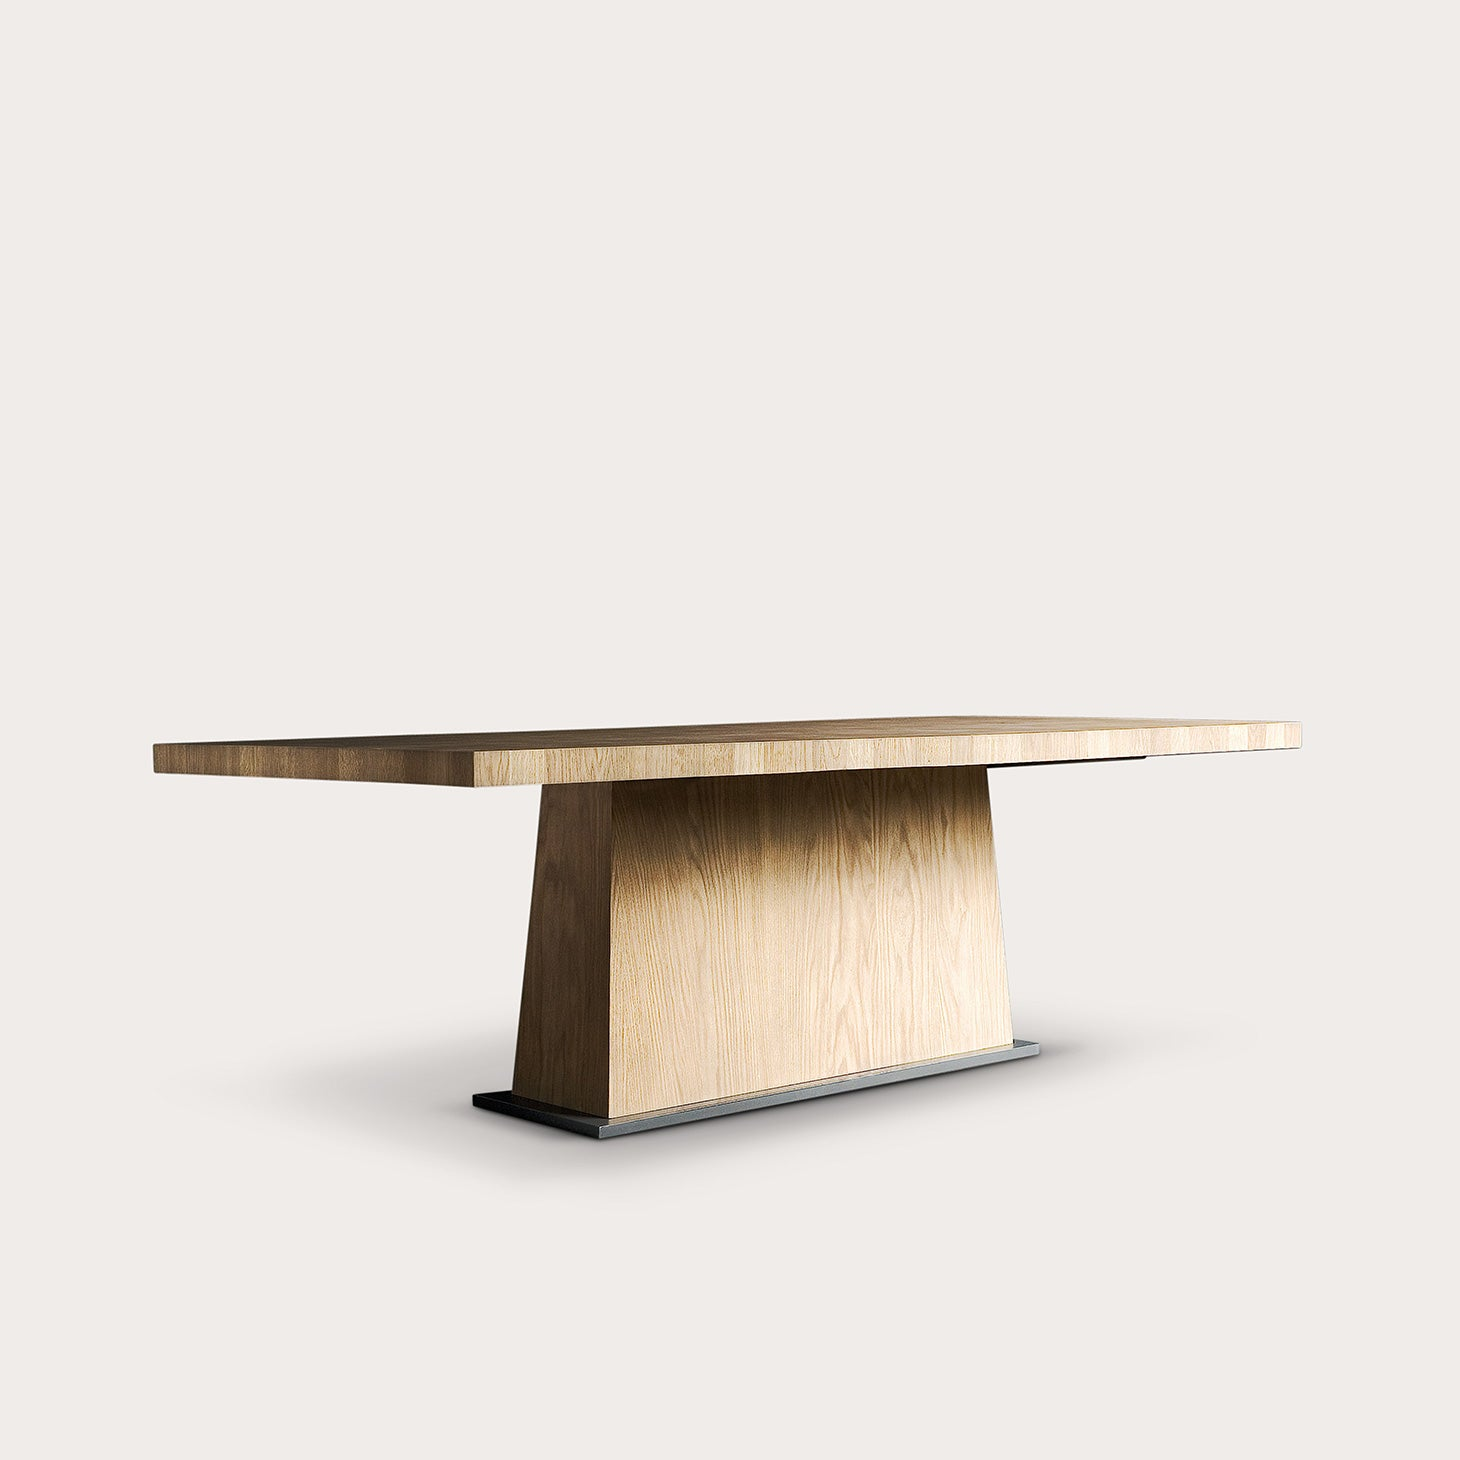 Kops Dining Table - Rectangle Tables Marlieke Van Rossum Designer Furniture Sku: 416-230-10190